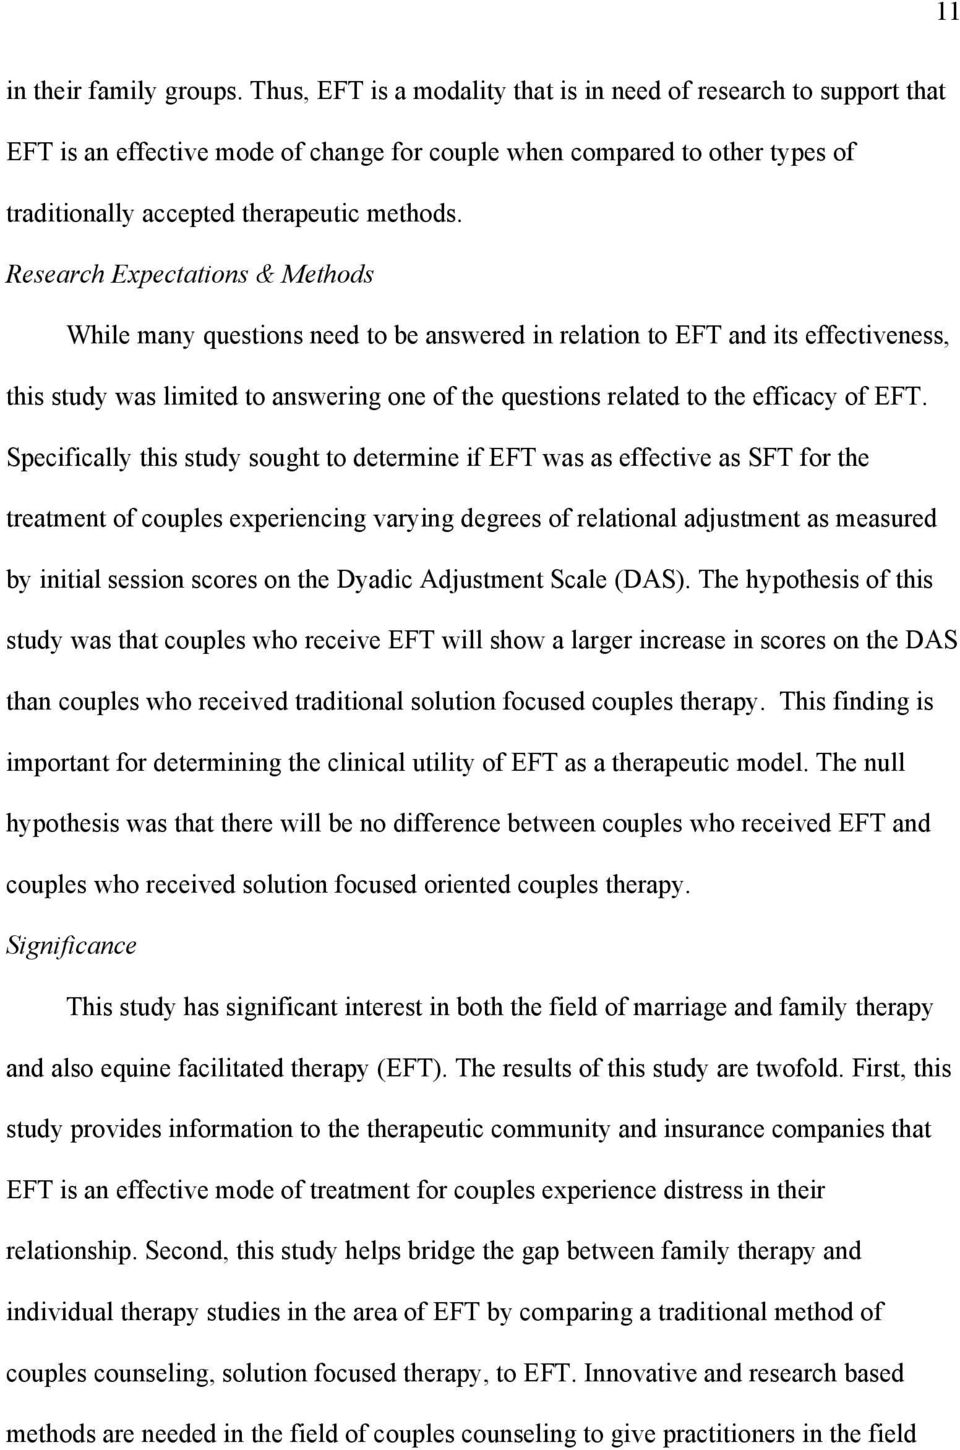 Research Expectations & Methods While many questions need to be answered in relation to EFT and its effectiveness, this study was limited to answering one of the questions related to the efficacy of